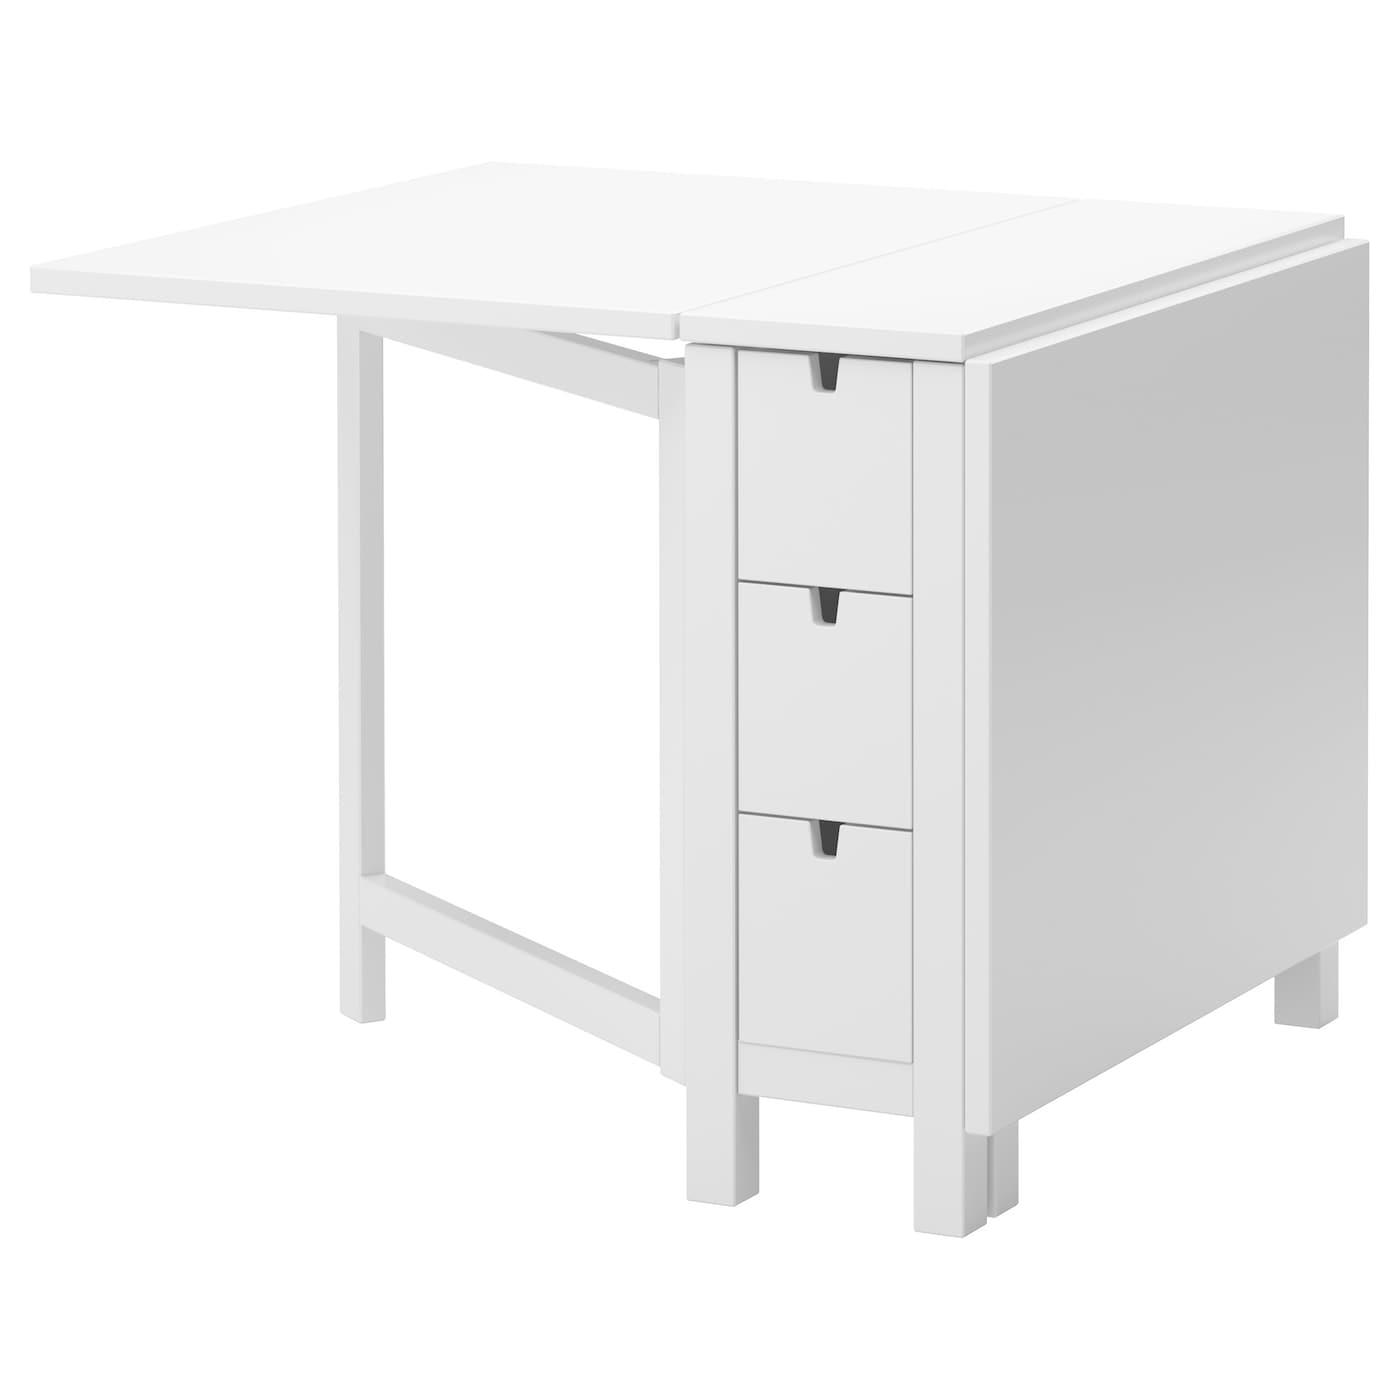 Dining tables kitchen tables dining room tables ikea for Mesas de cocina plegables en ikea